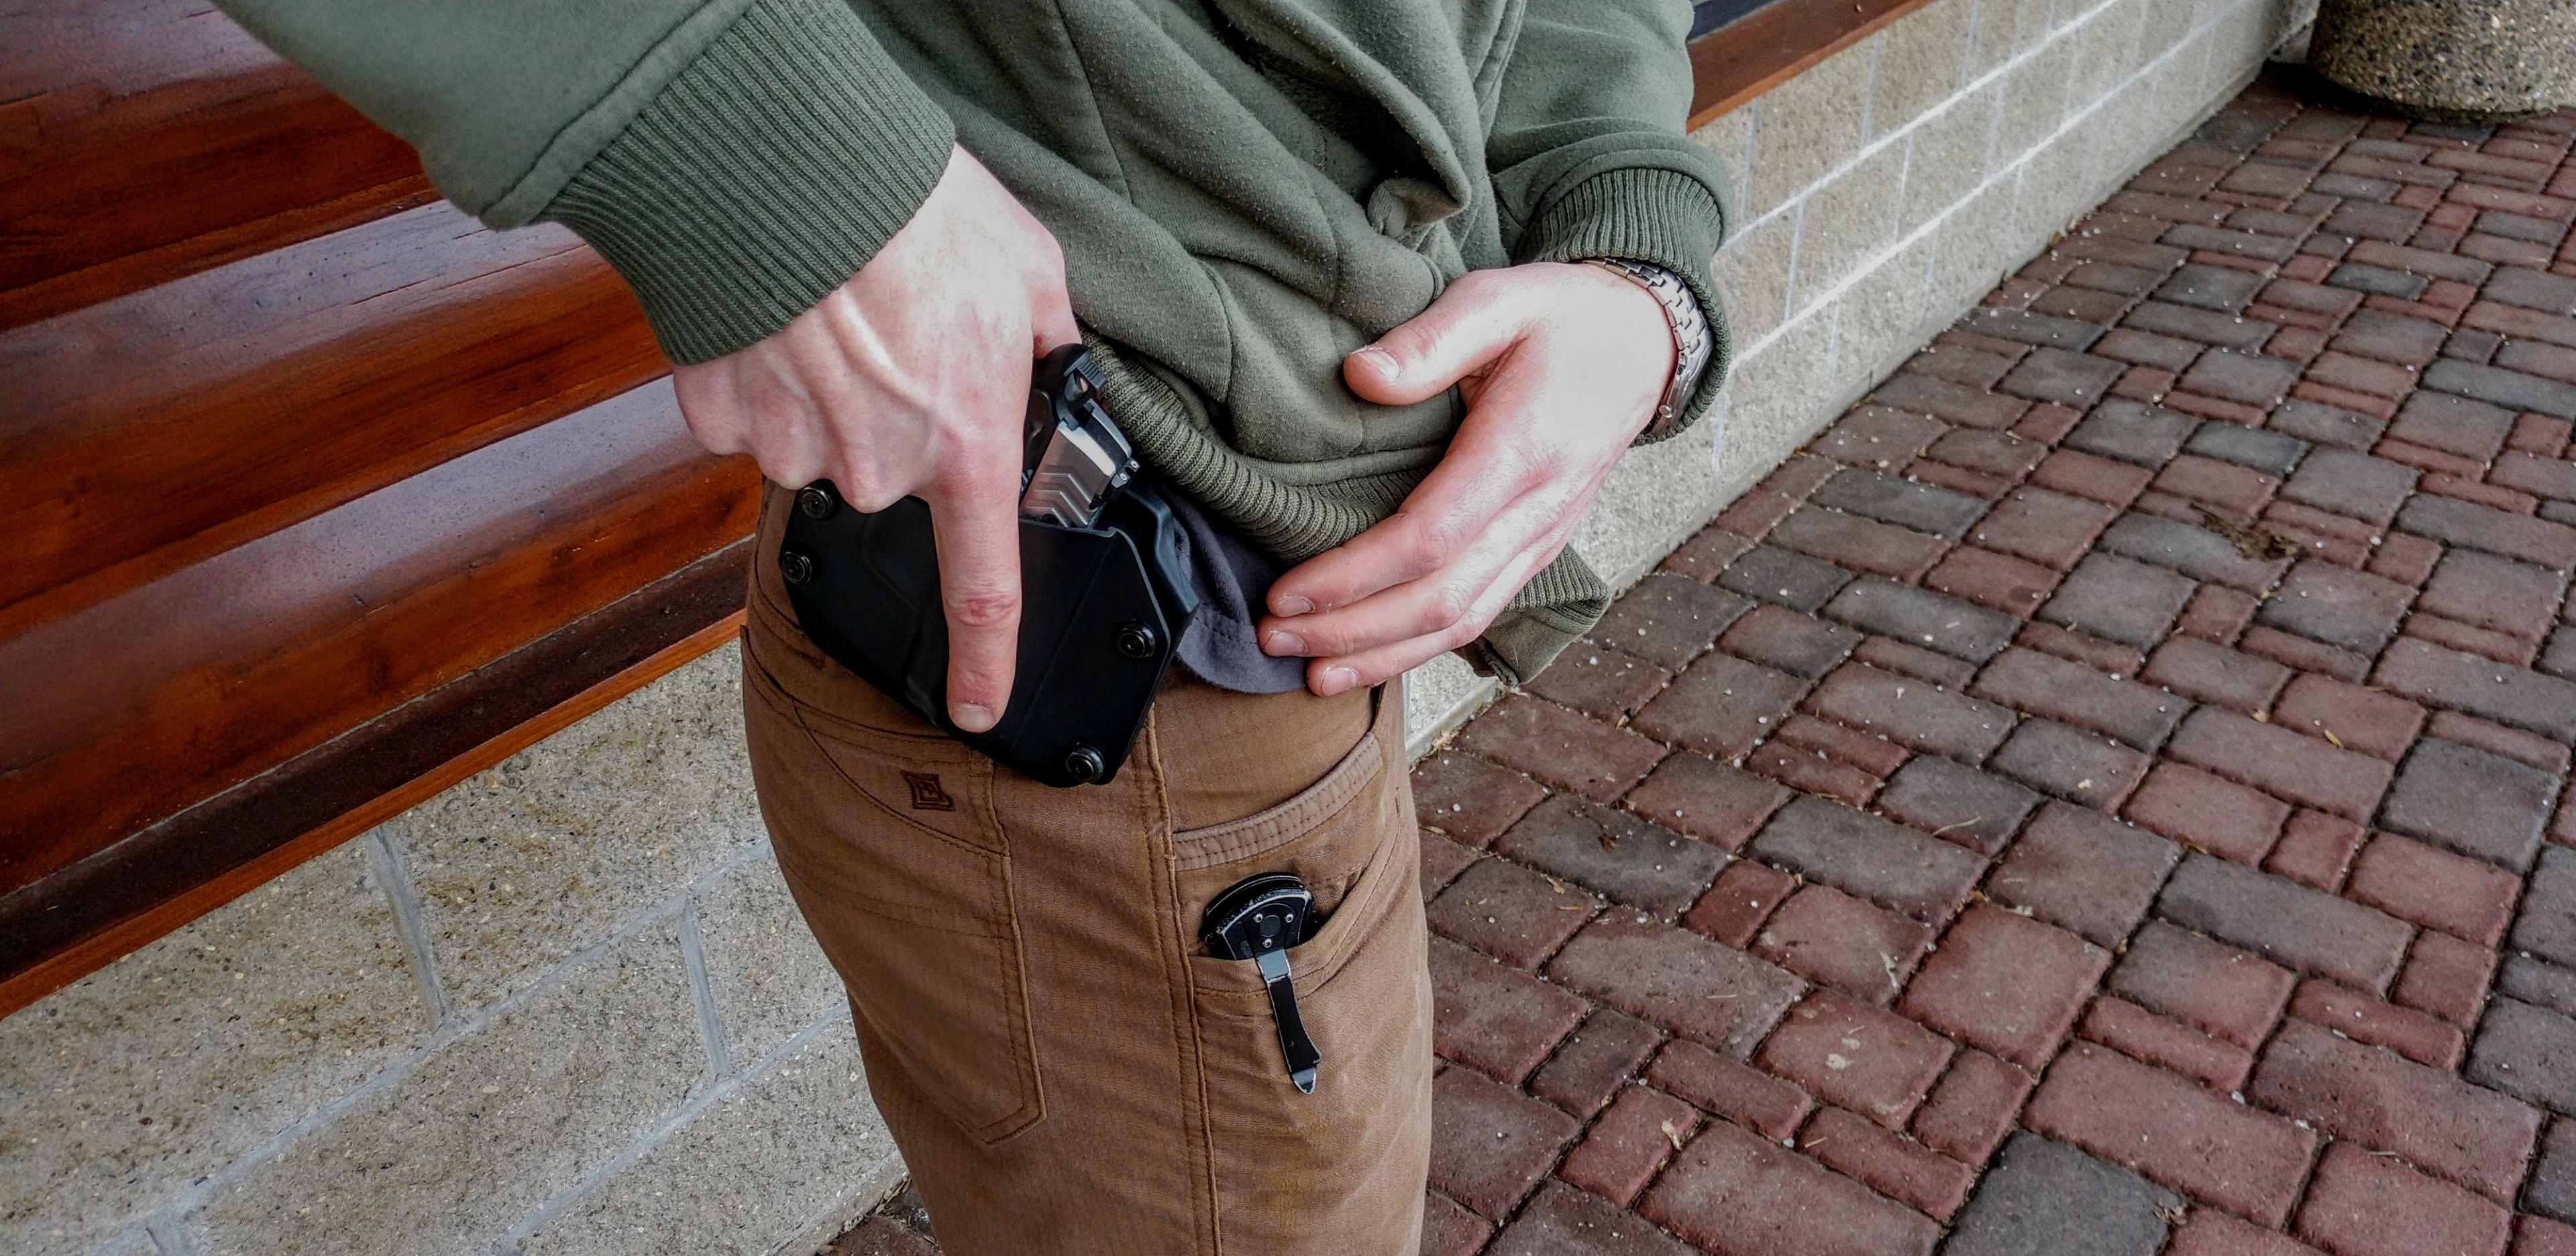 Permit to Carry Holders Reach an All-Time High in MN